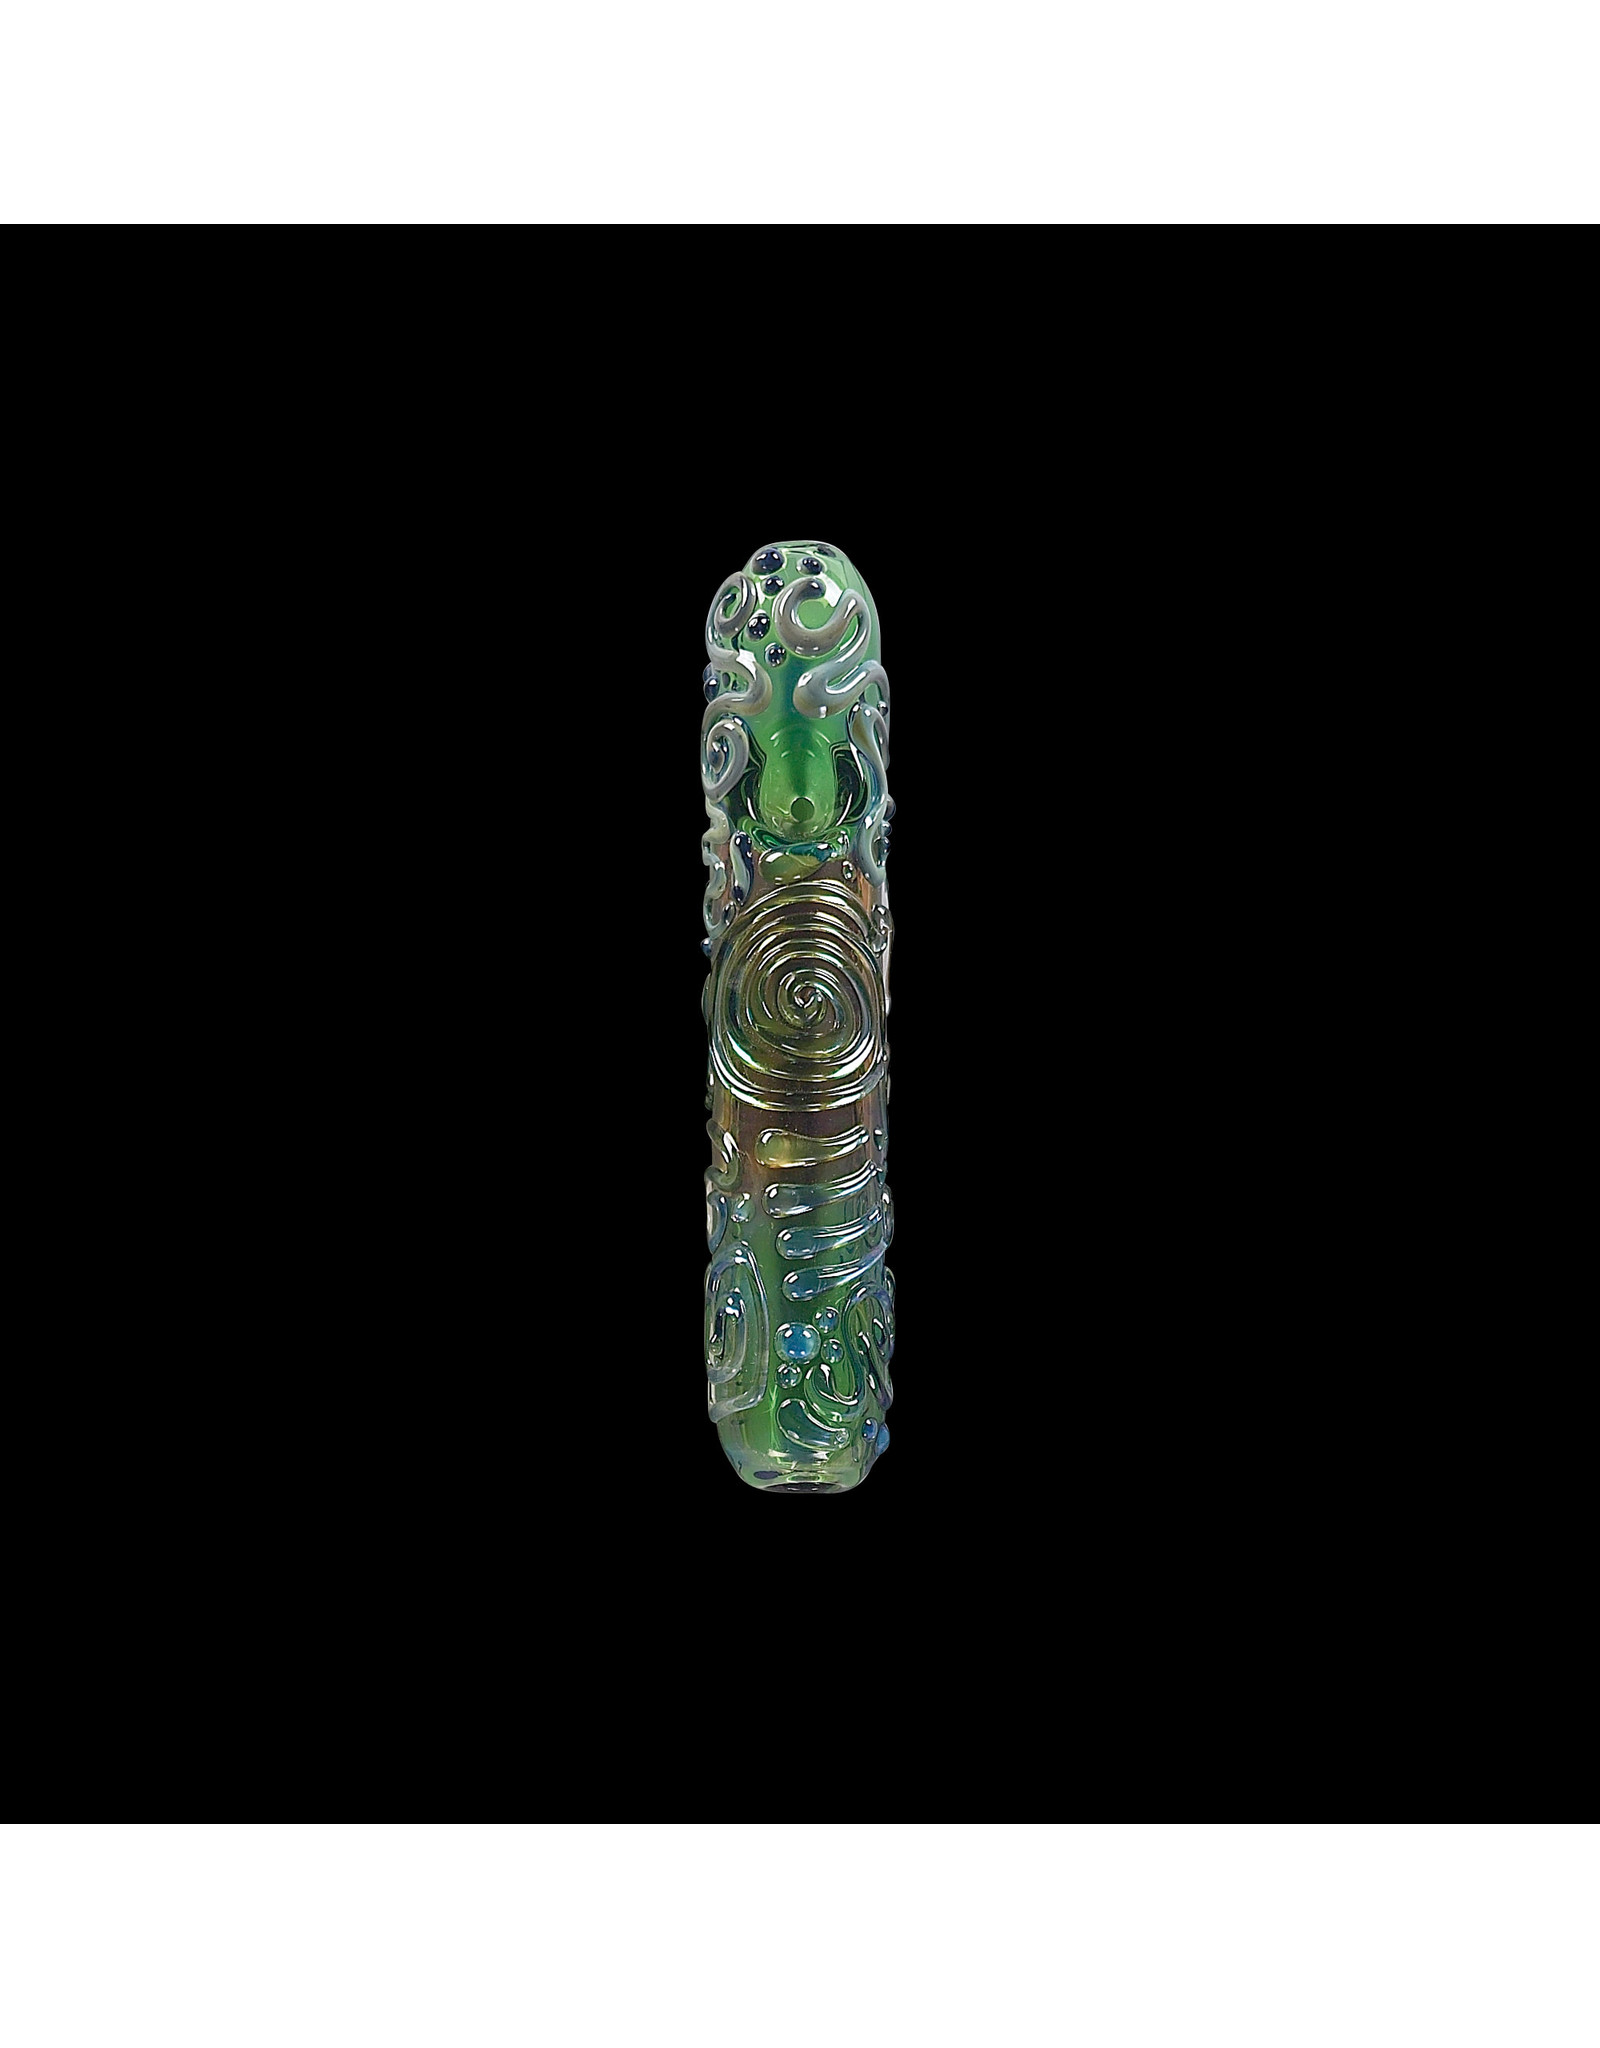 Chameleon Glass Kobaya Ashi Maru - Green Pipe